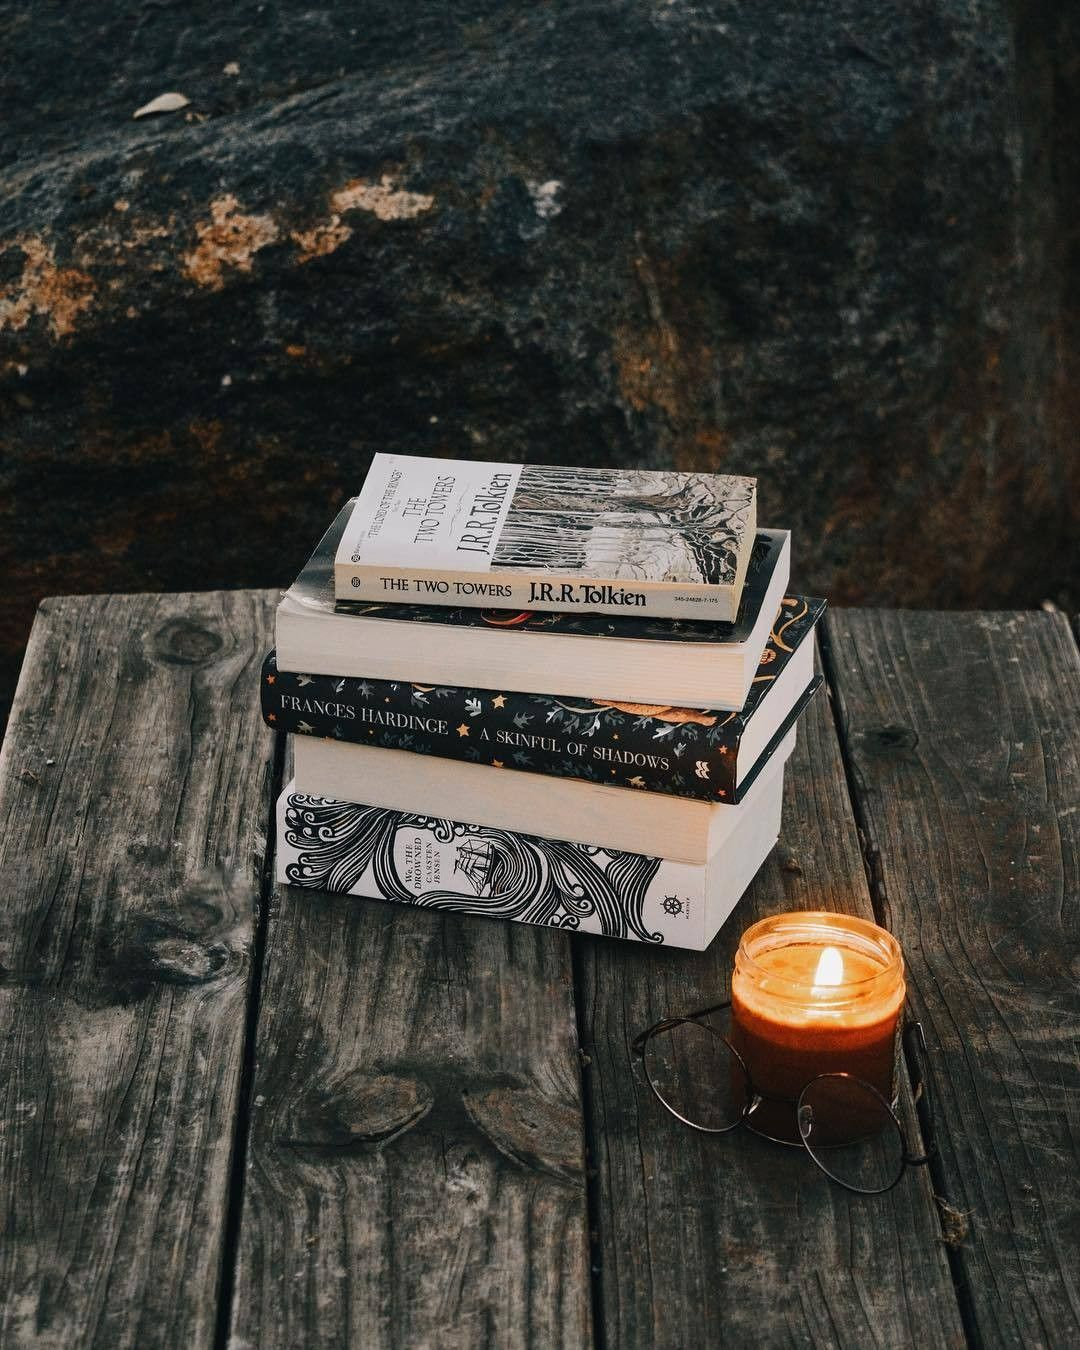 Pin By Margaret Lee On Books Book Burning Books Autumn Photography